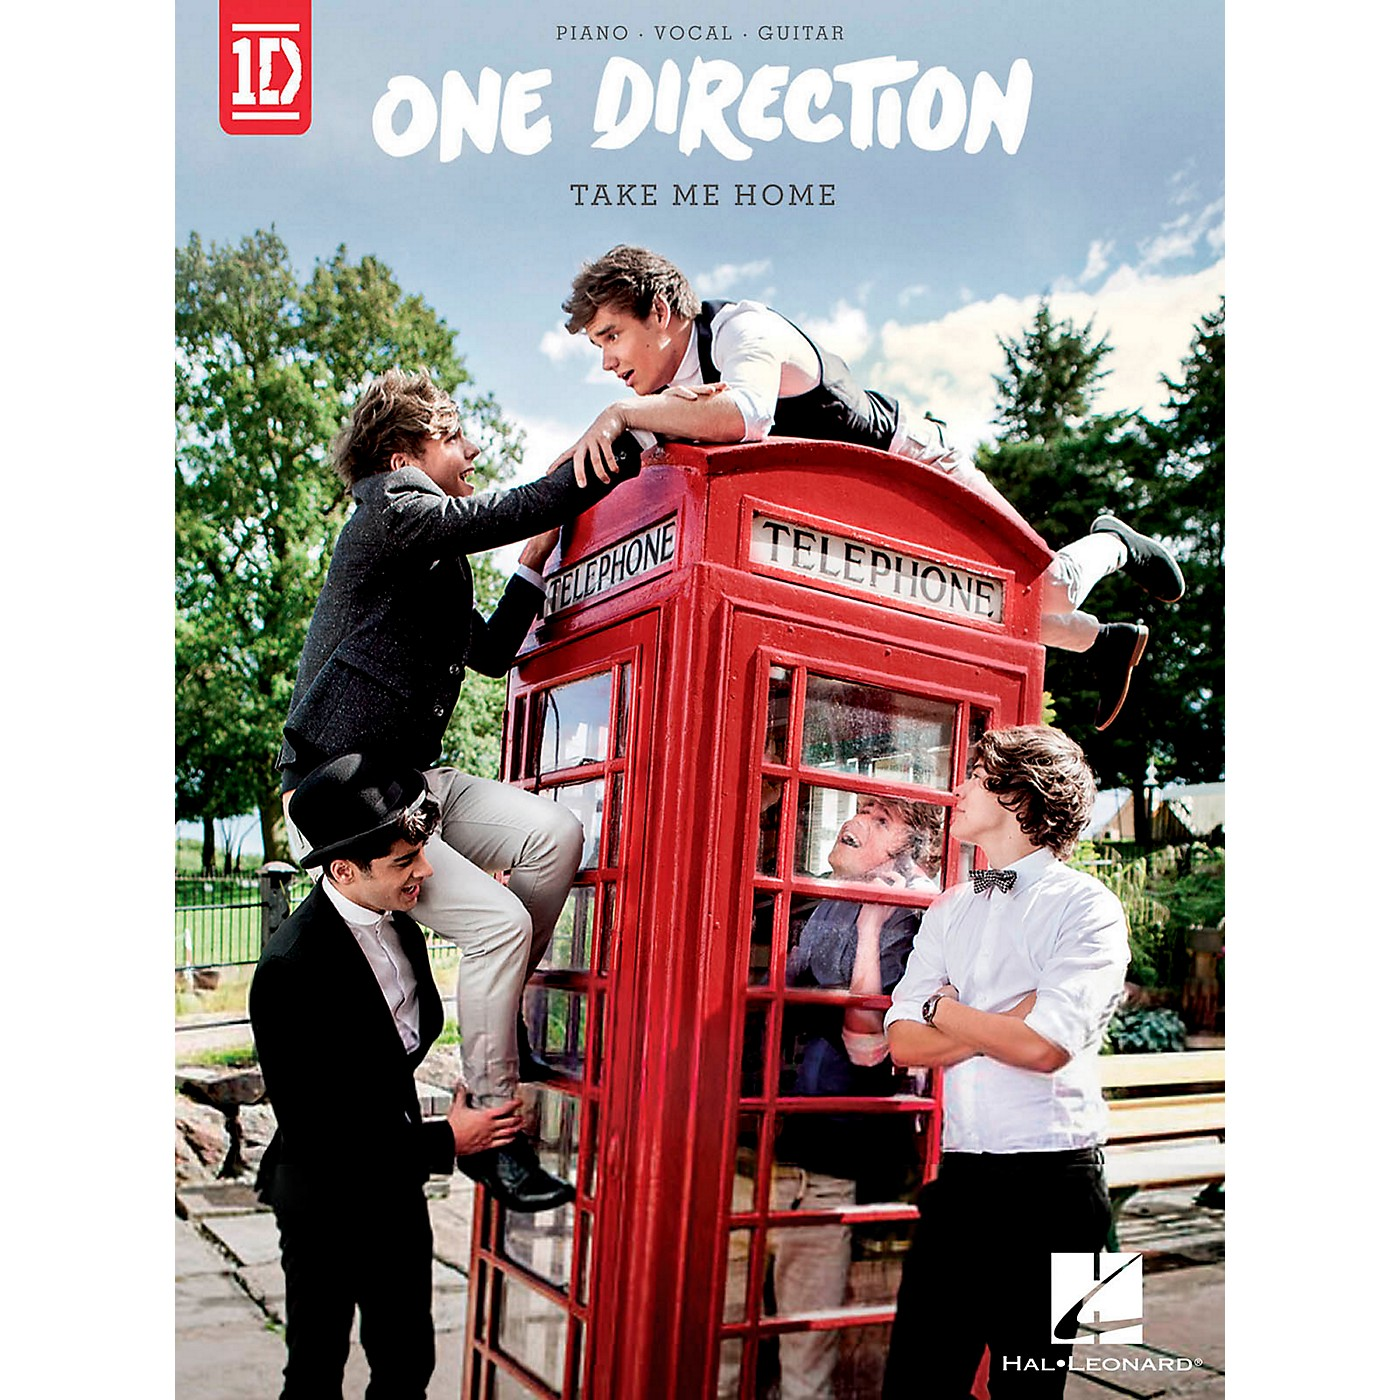 Hal Leonard One Direction - Take Me Home for Piano/Vocal/Guitar thumbnail